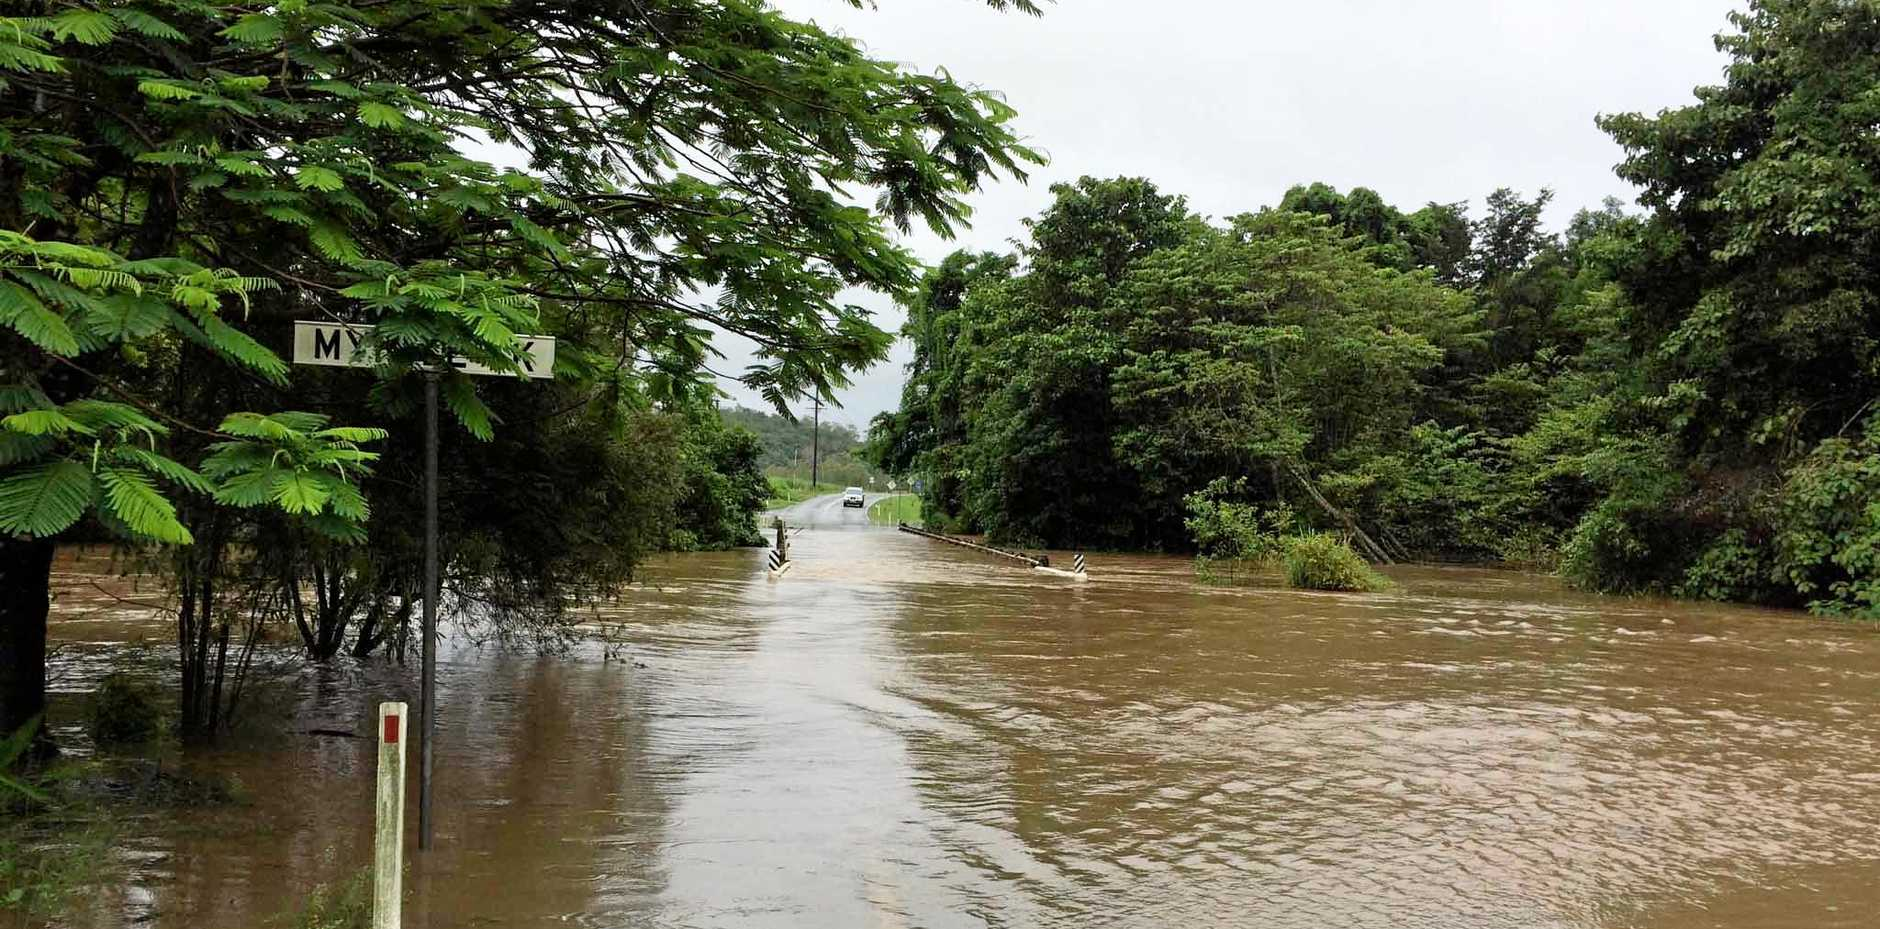 A road train was swept from the highway at Amby, where the Amby Creek had flooded.